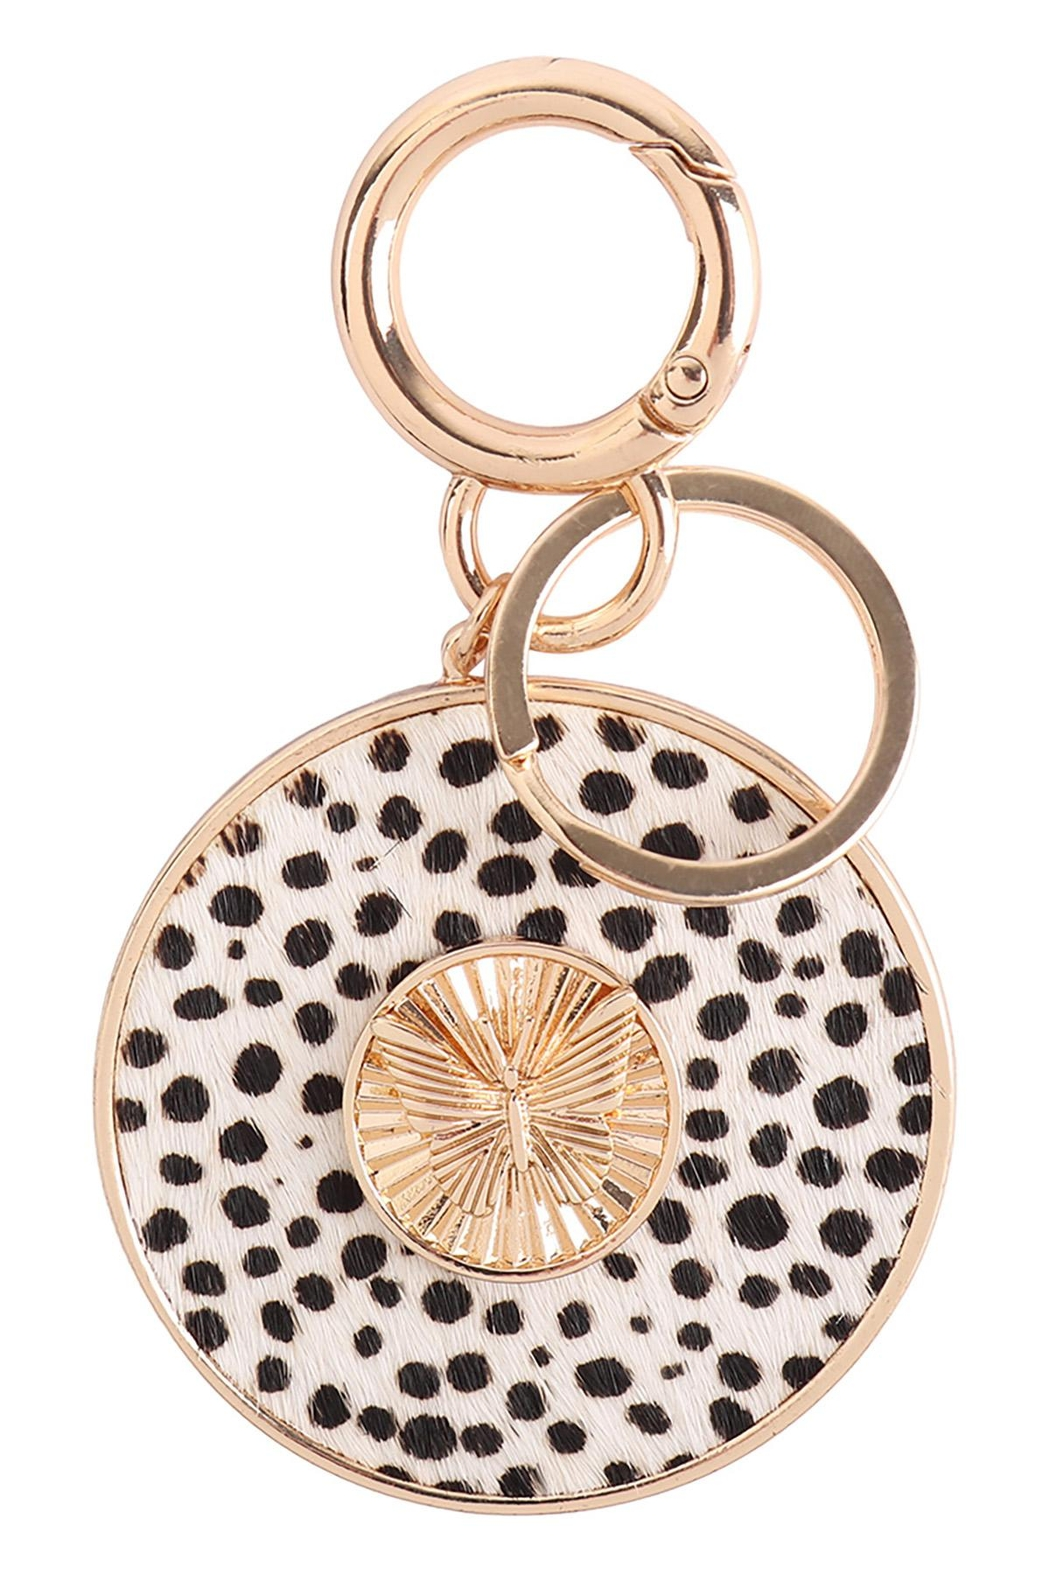 Riah Fashion Butterfly-Engraved-With-Real-Calf-Hair-Leather-Keychain - Main Image